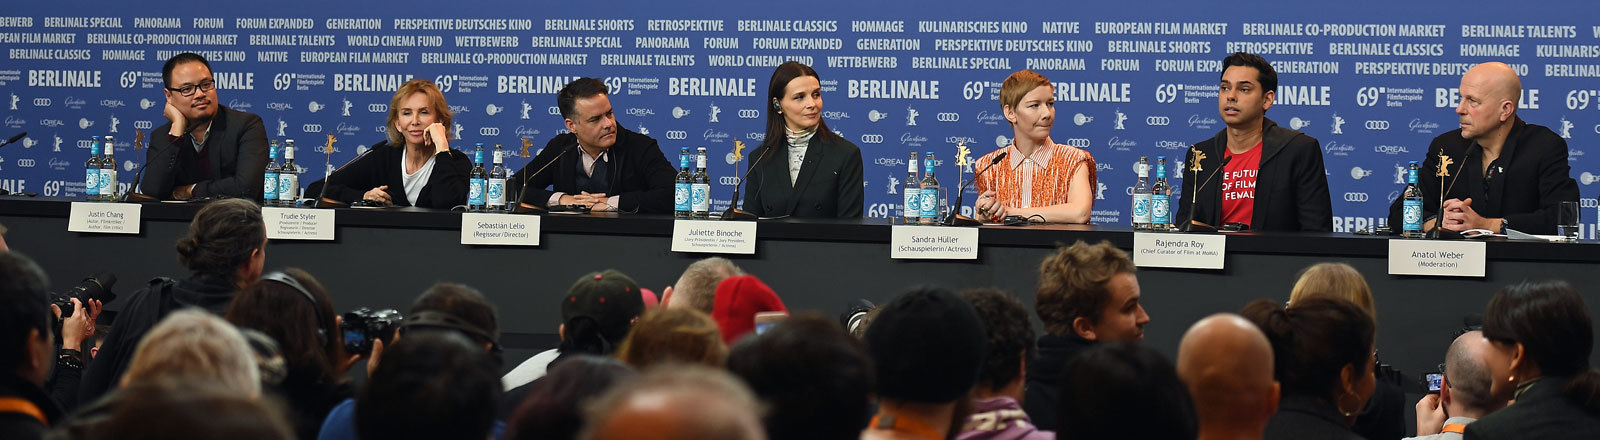 From left, Author, film critic and Berlinale jury member Justin Chang, English actress, film producer, director and Berlinale jury member Trudie Styler, Chilean-Argentine director and Berlinale jury member Sebastian Lelio, French actress and Berlinale jury president Juliette Binoche, German actress and Berlinale jury member Sandra Hueller and Author and Berlinale jury member Rajendra Roy attend a news conference ahead of the Berlinale International Film Festival in Berlin, Germany.